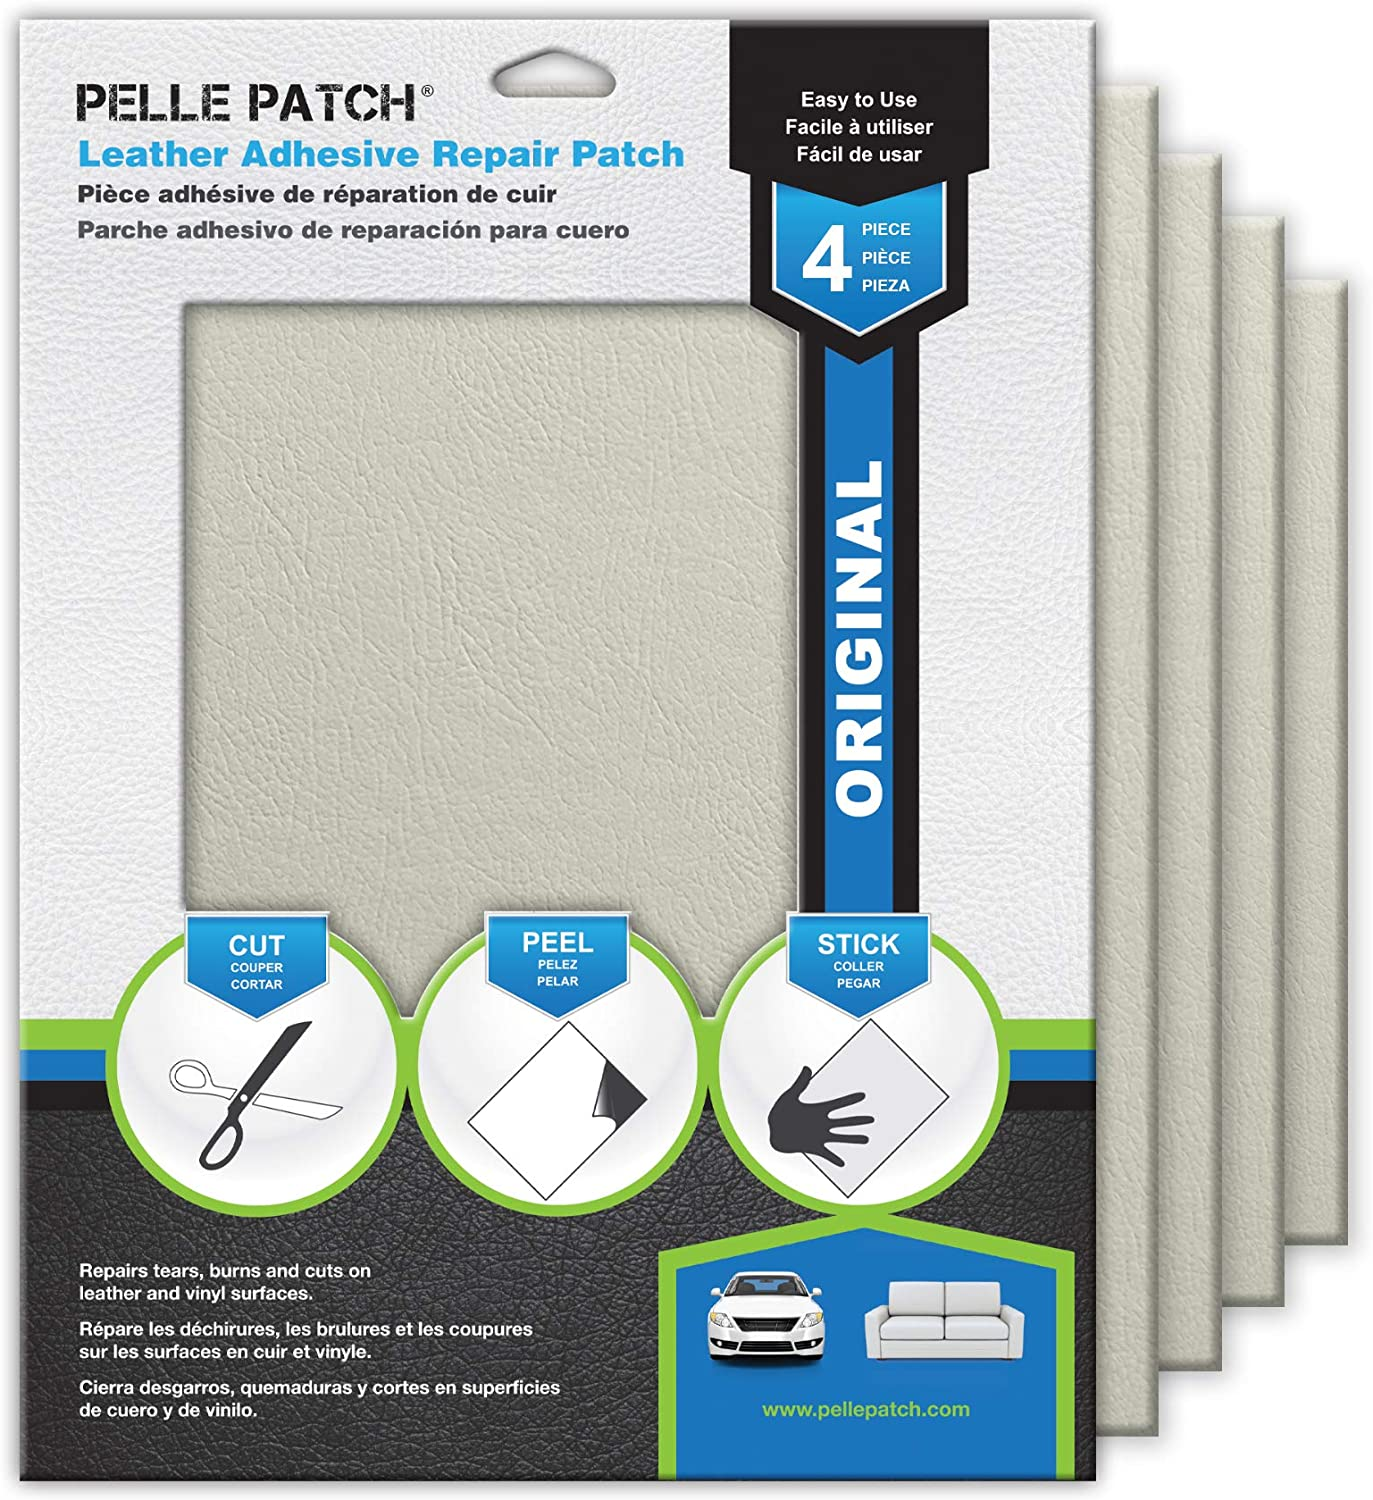 Pelle Patch - 4X Leather & Vinyl Adhesive Repair Patch - 25 Colors Available - Original 8x11 - Off-White